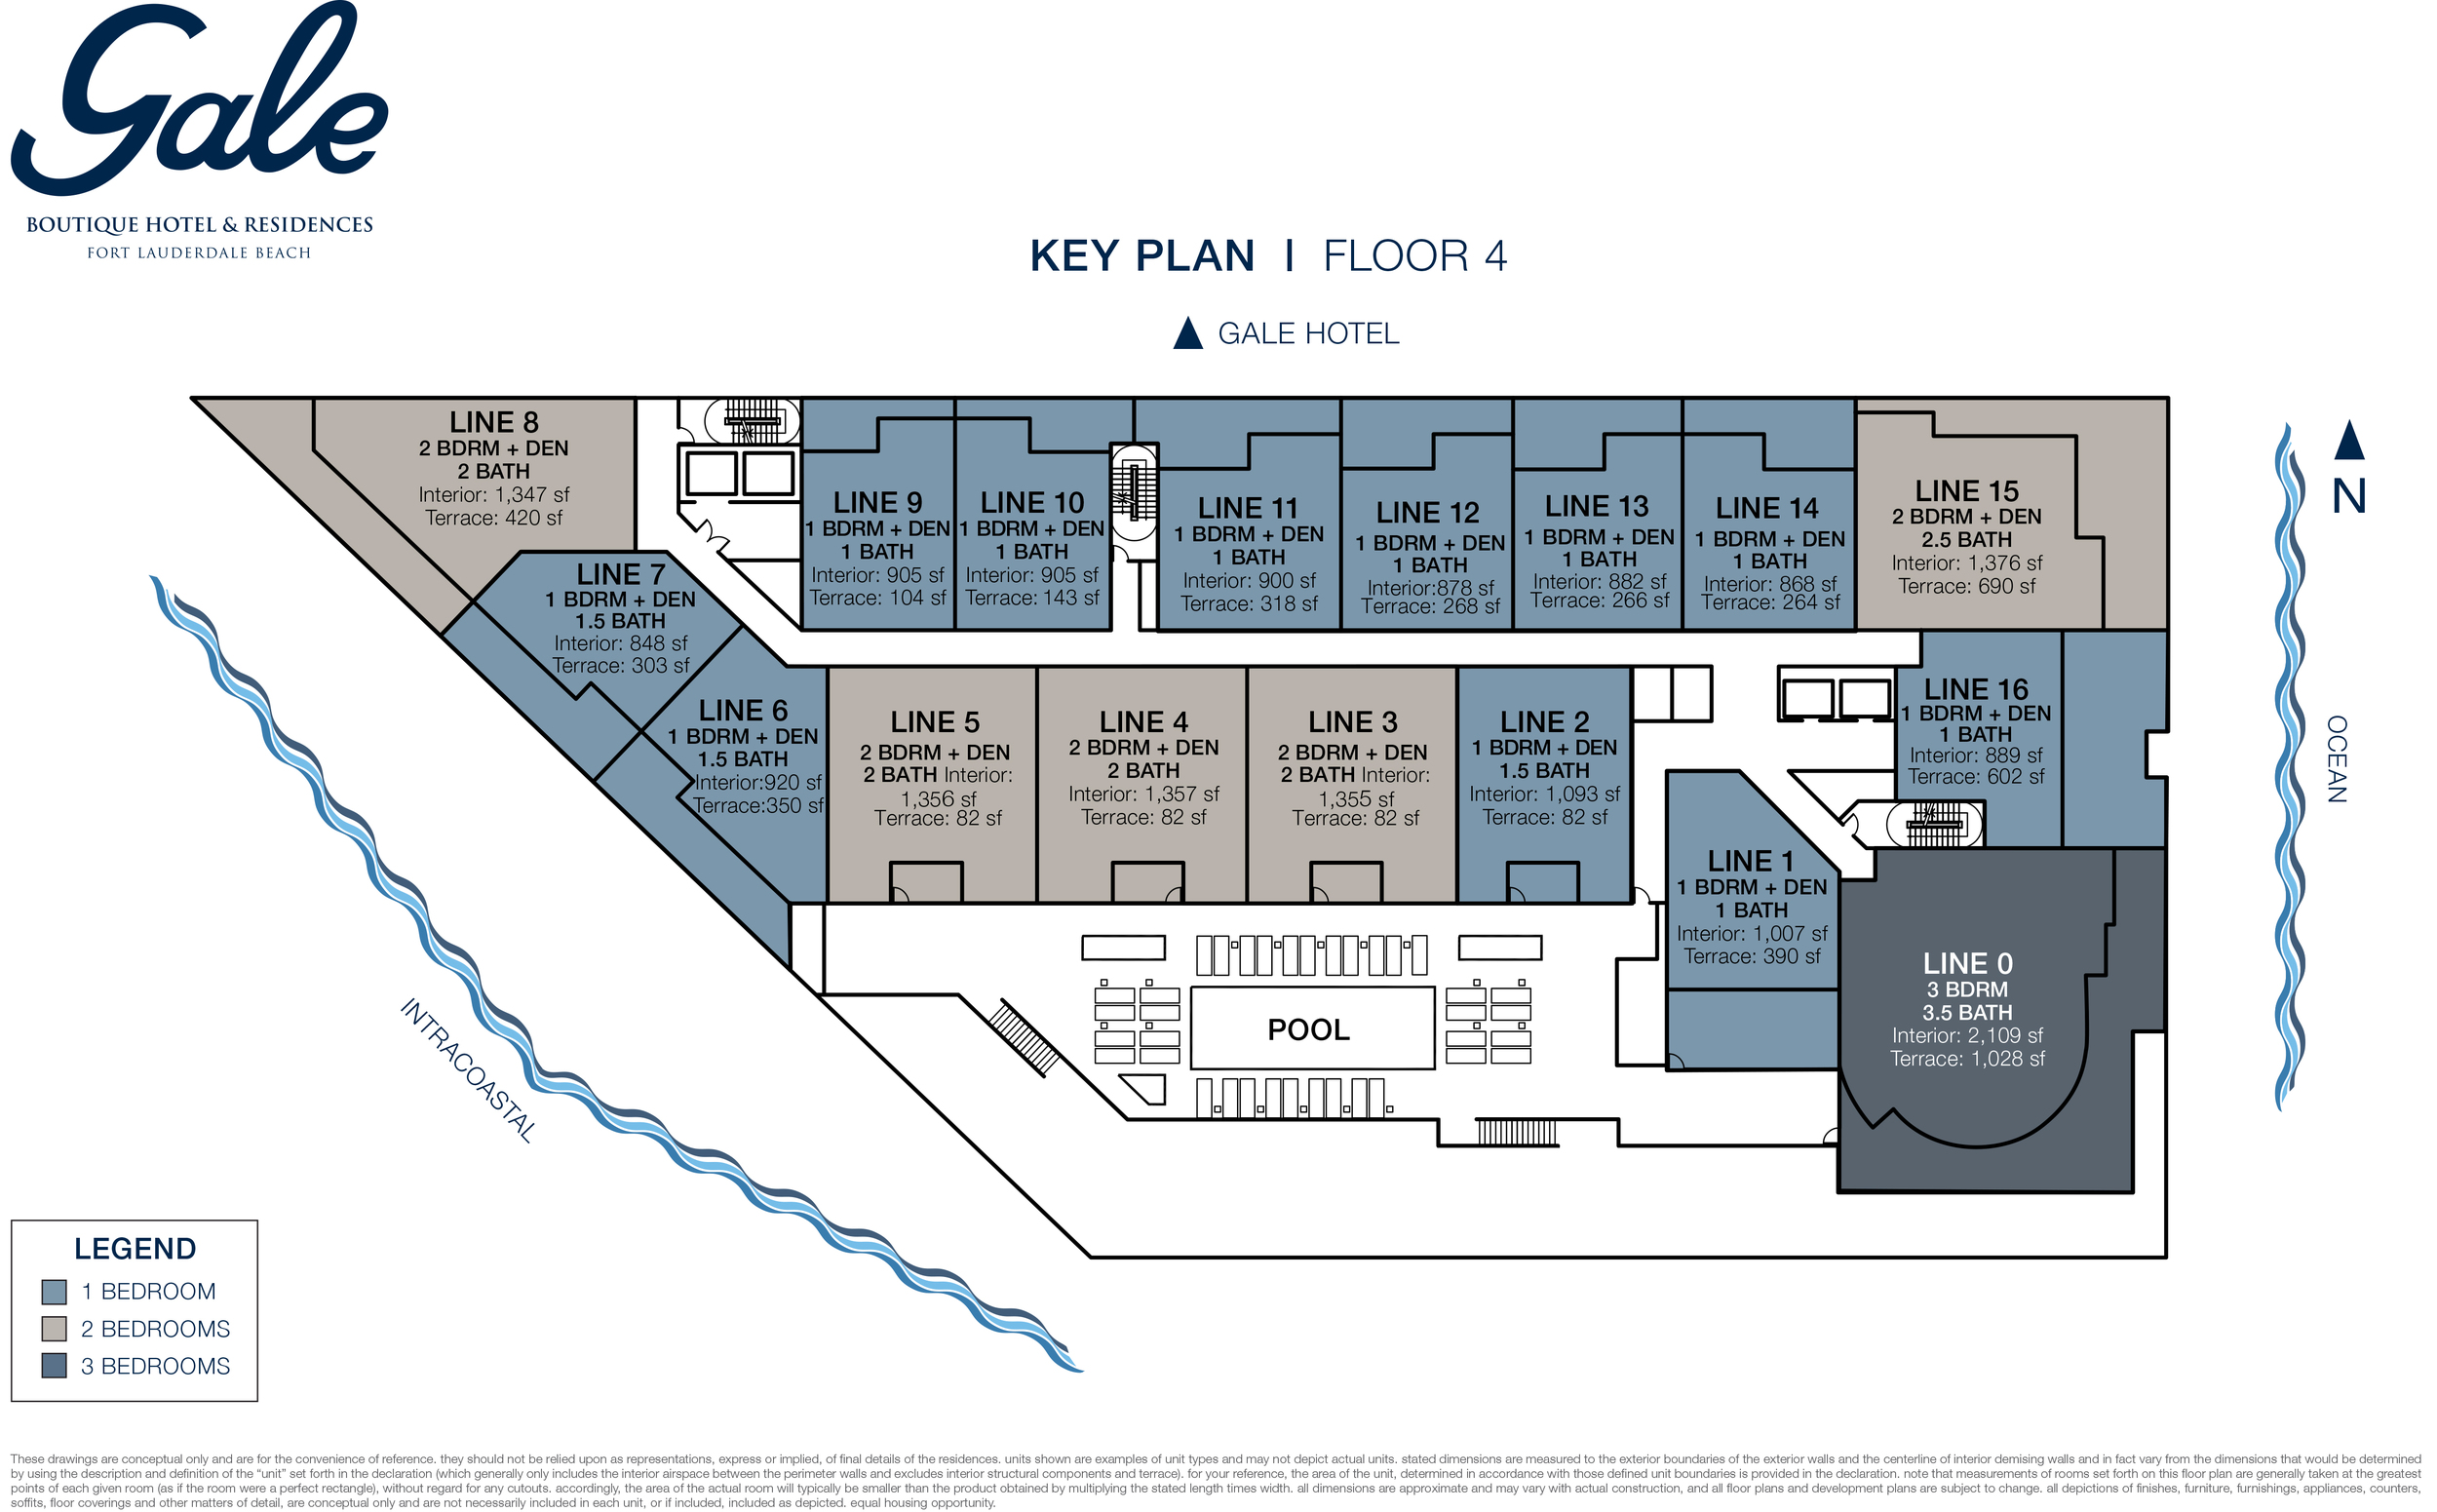 Gale Boutique Hotel & Residences Ft.Lauderdale 4th Floor Key Plan